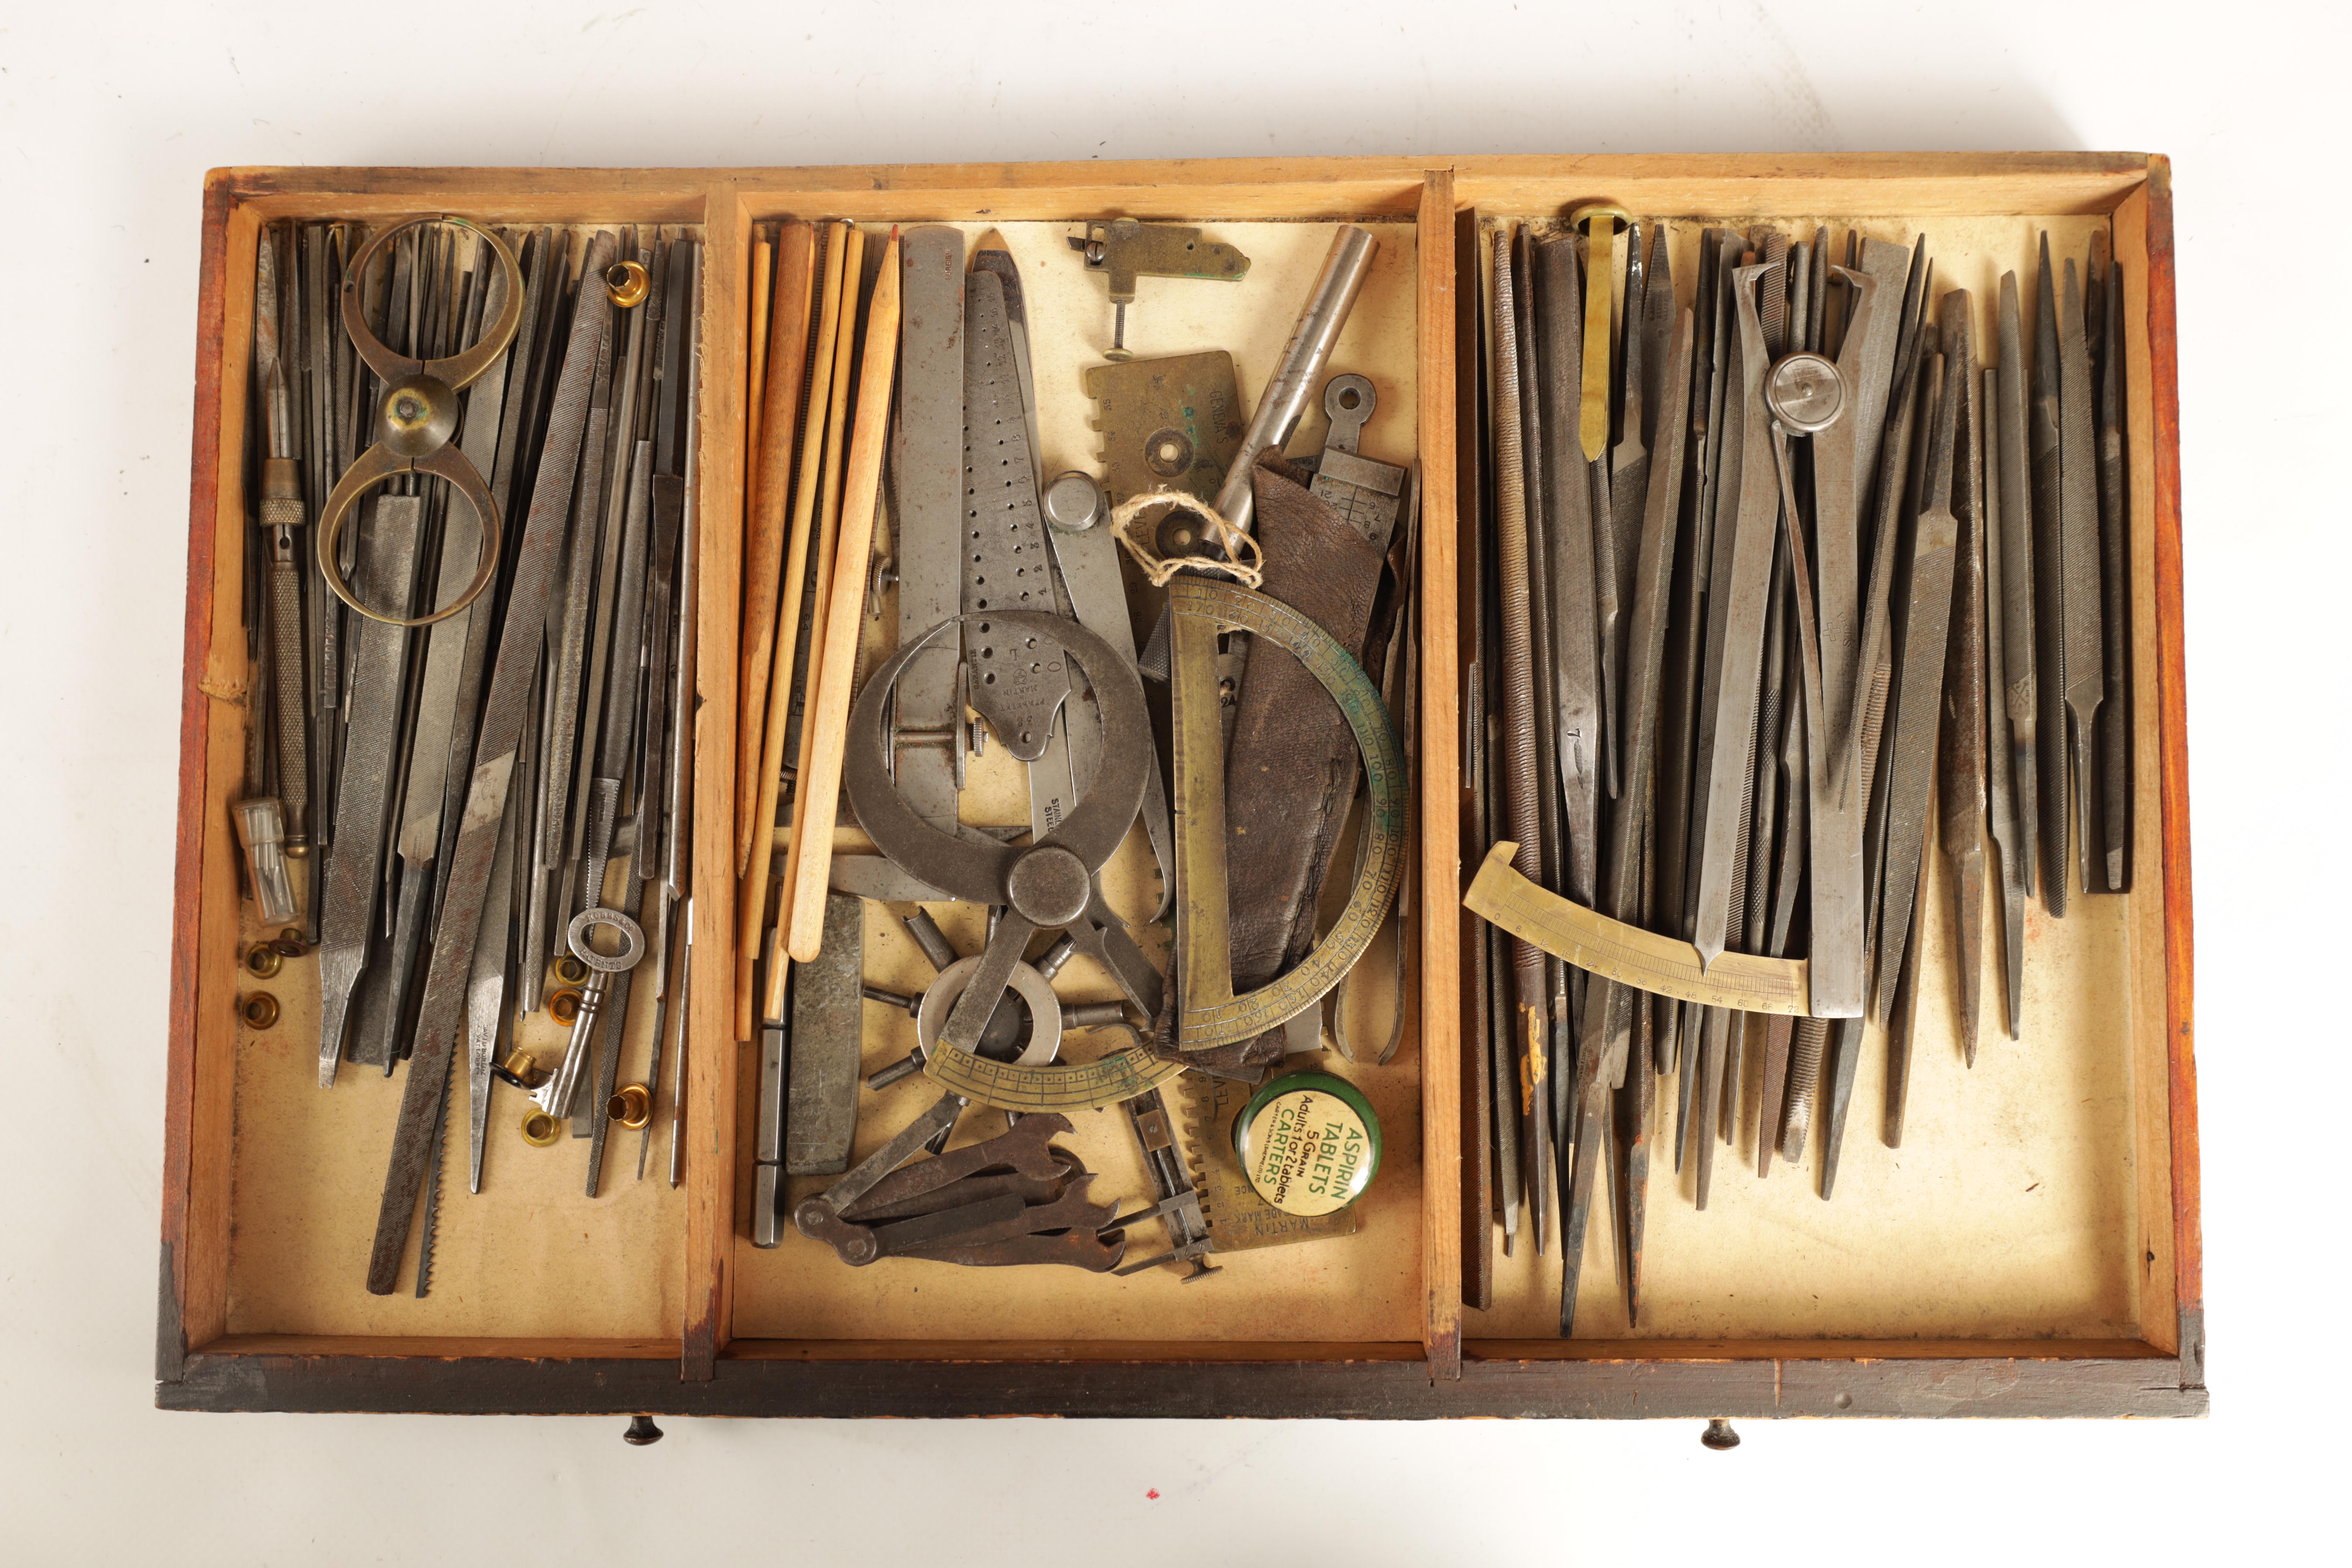 A LARGE COLLECTION OF JEWELERS AND WATCHMAKERS TOOLS contained in a set of pine drawers - Image 9 of 12